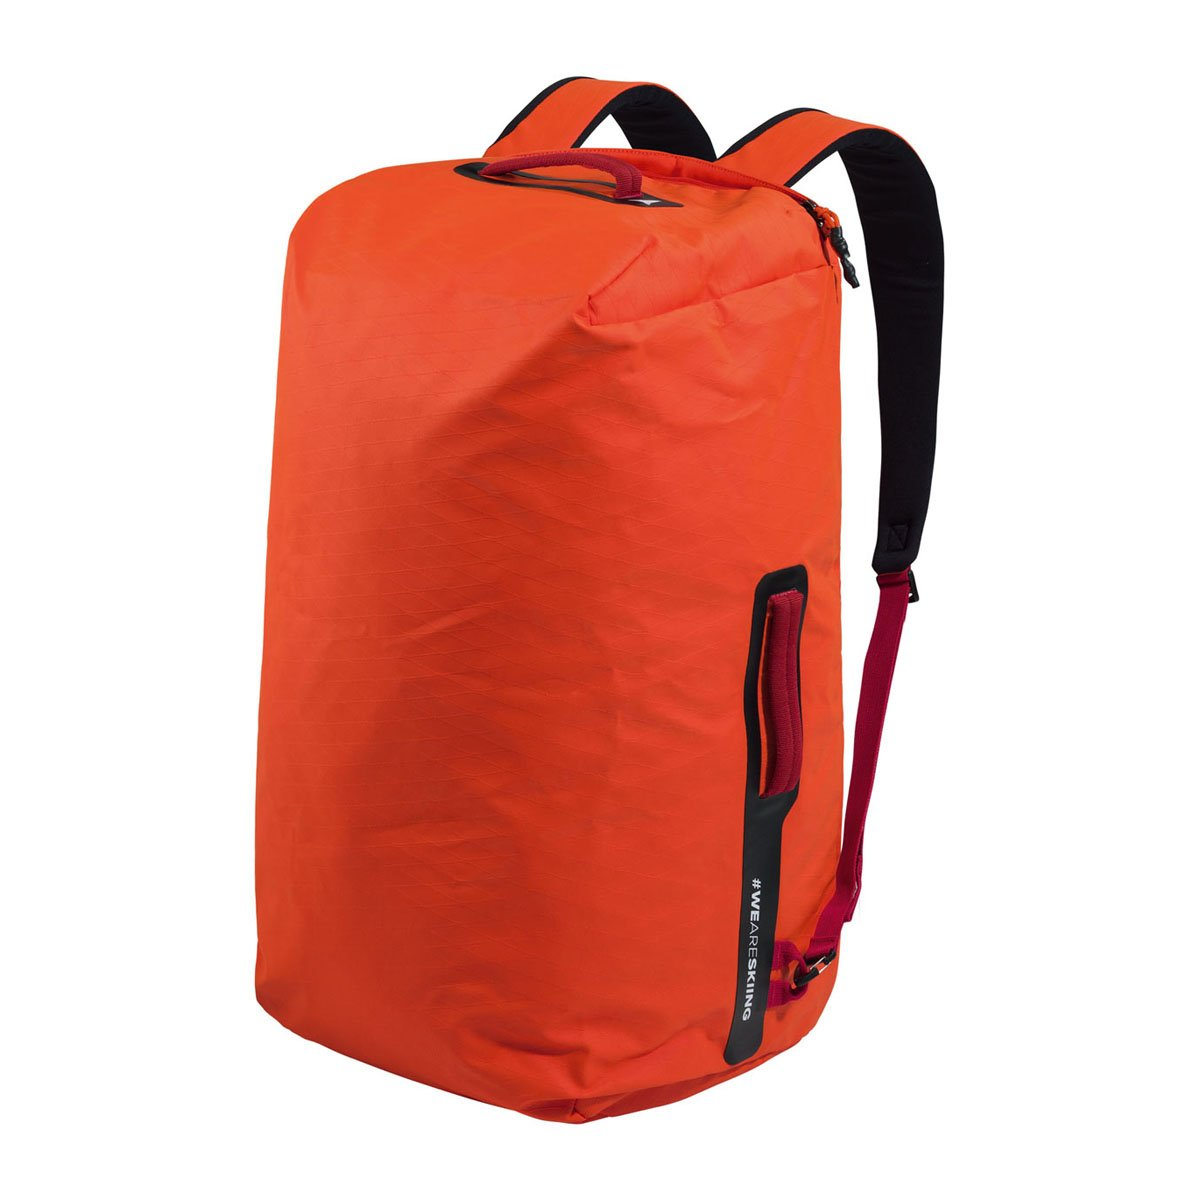 DUFFLE BAG 60L